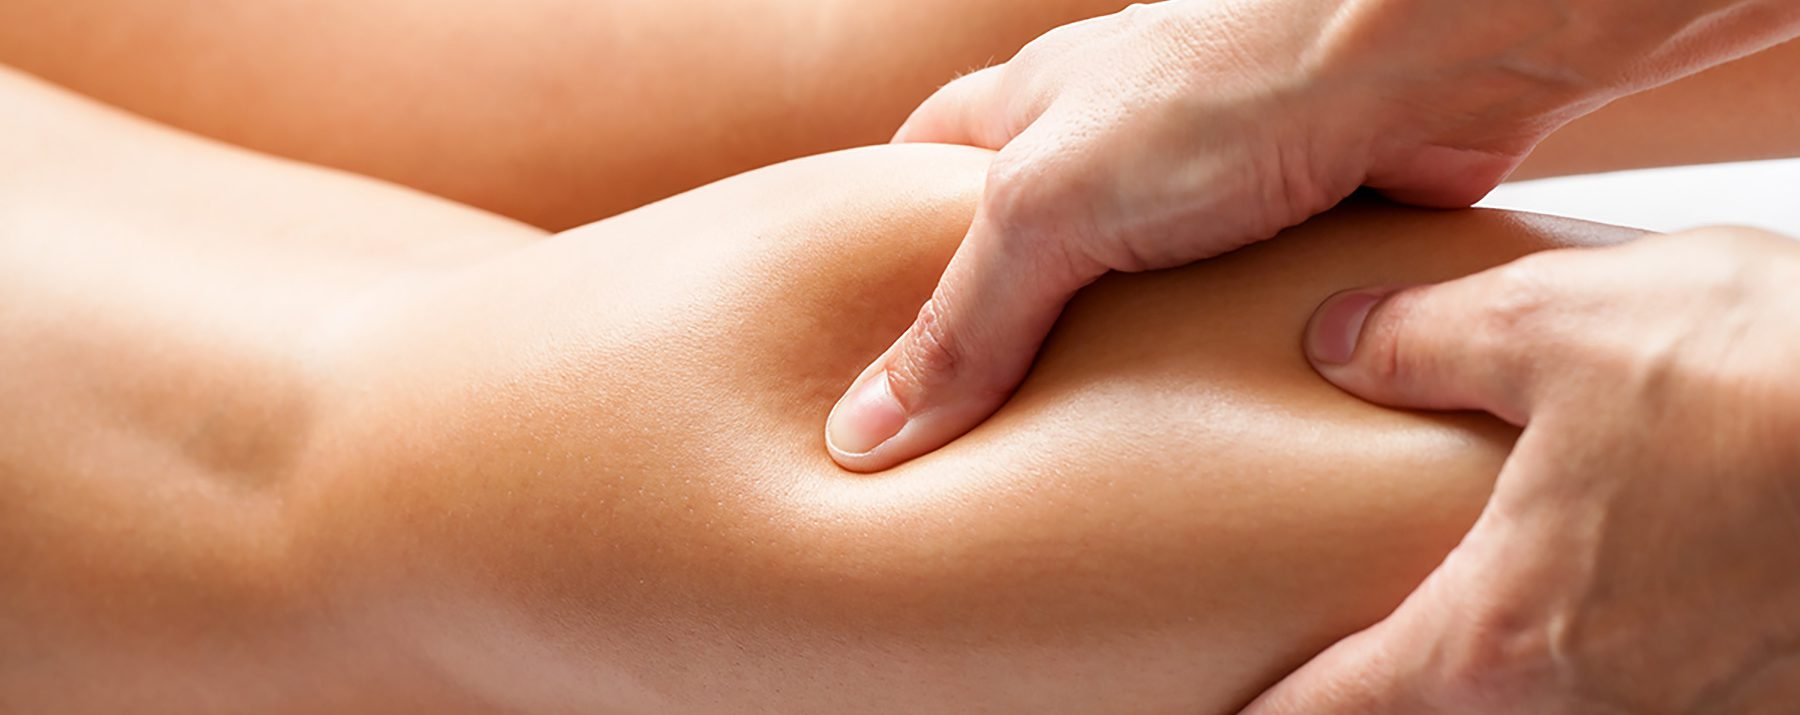 We offer highly specialised treatments